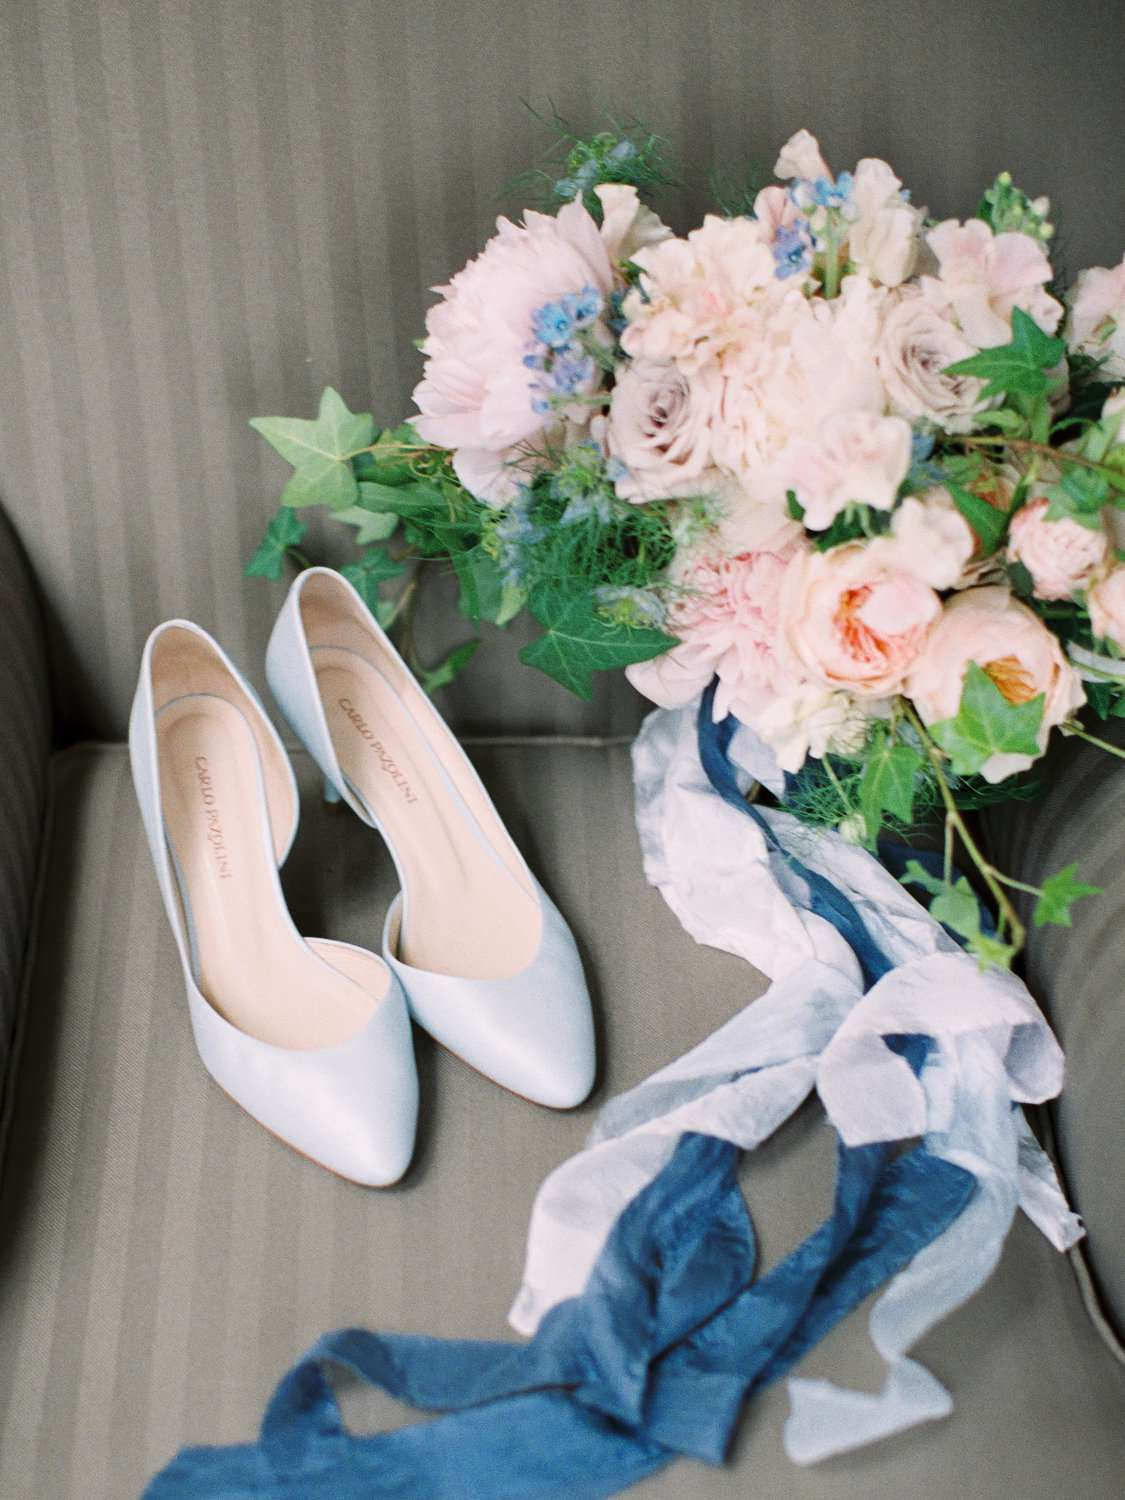 A pair of blue wedding shoes on a chair.